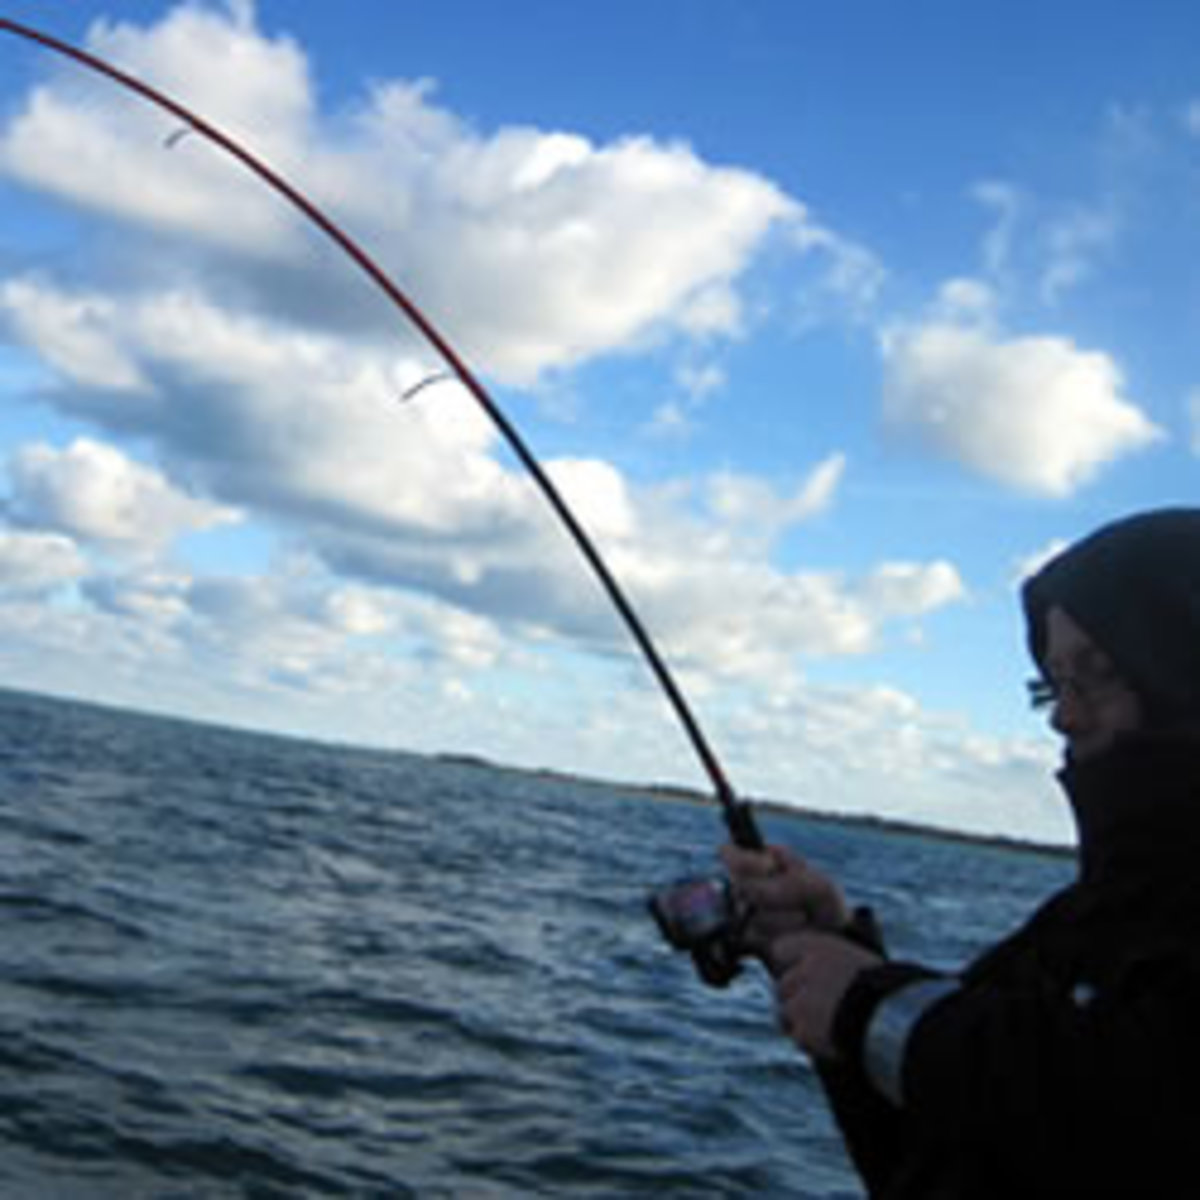 Sea Fishing - What Do I Do?